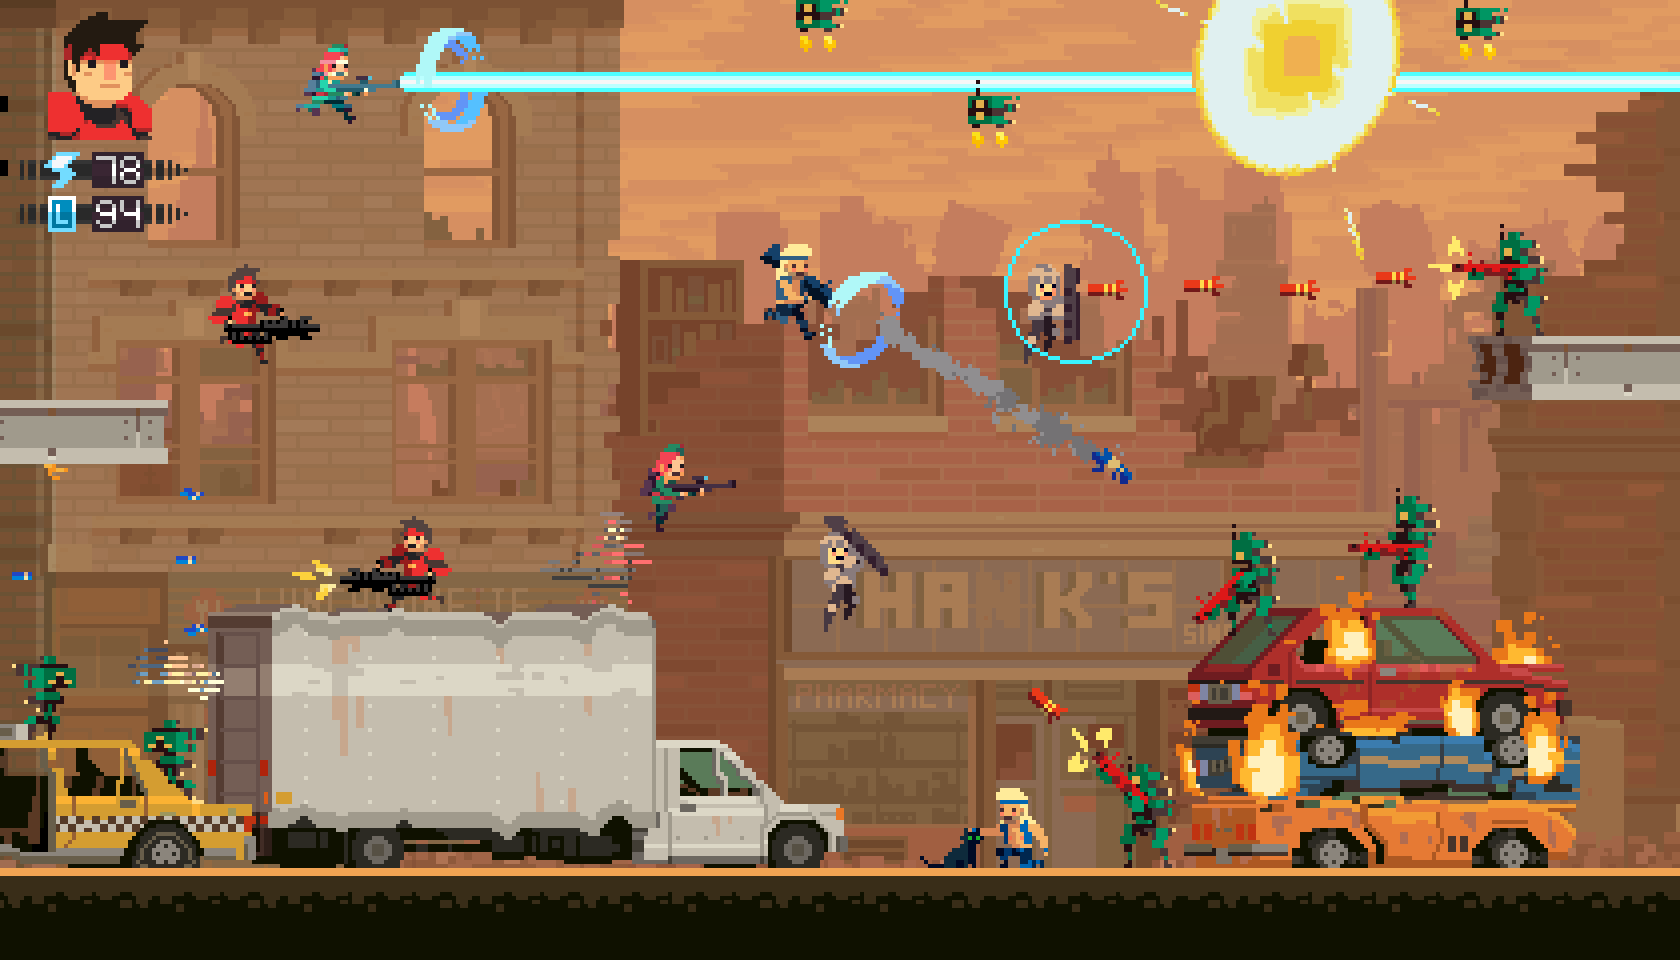 Super Time Force is headed to PS4 -- hear what the devs have to say!